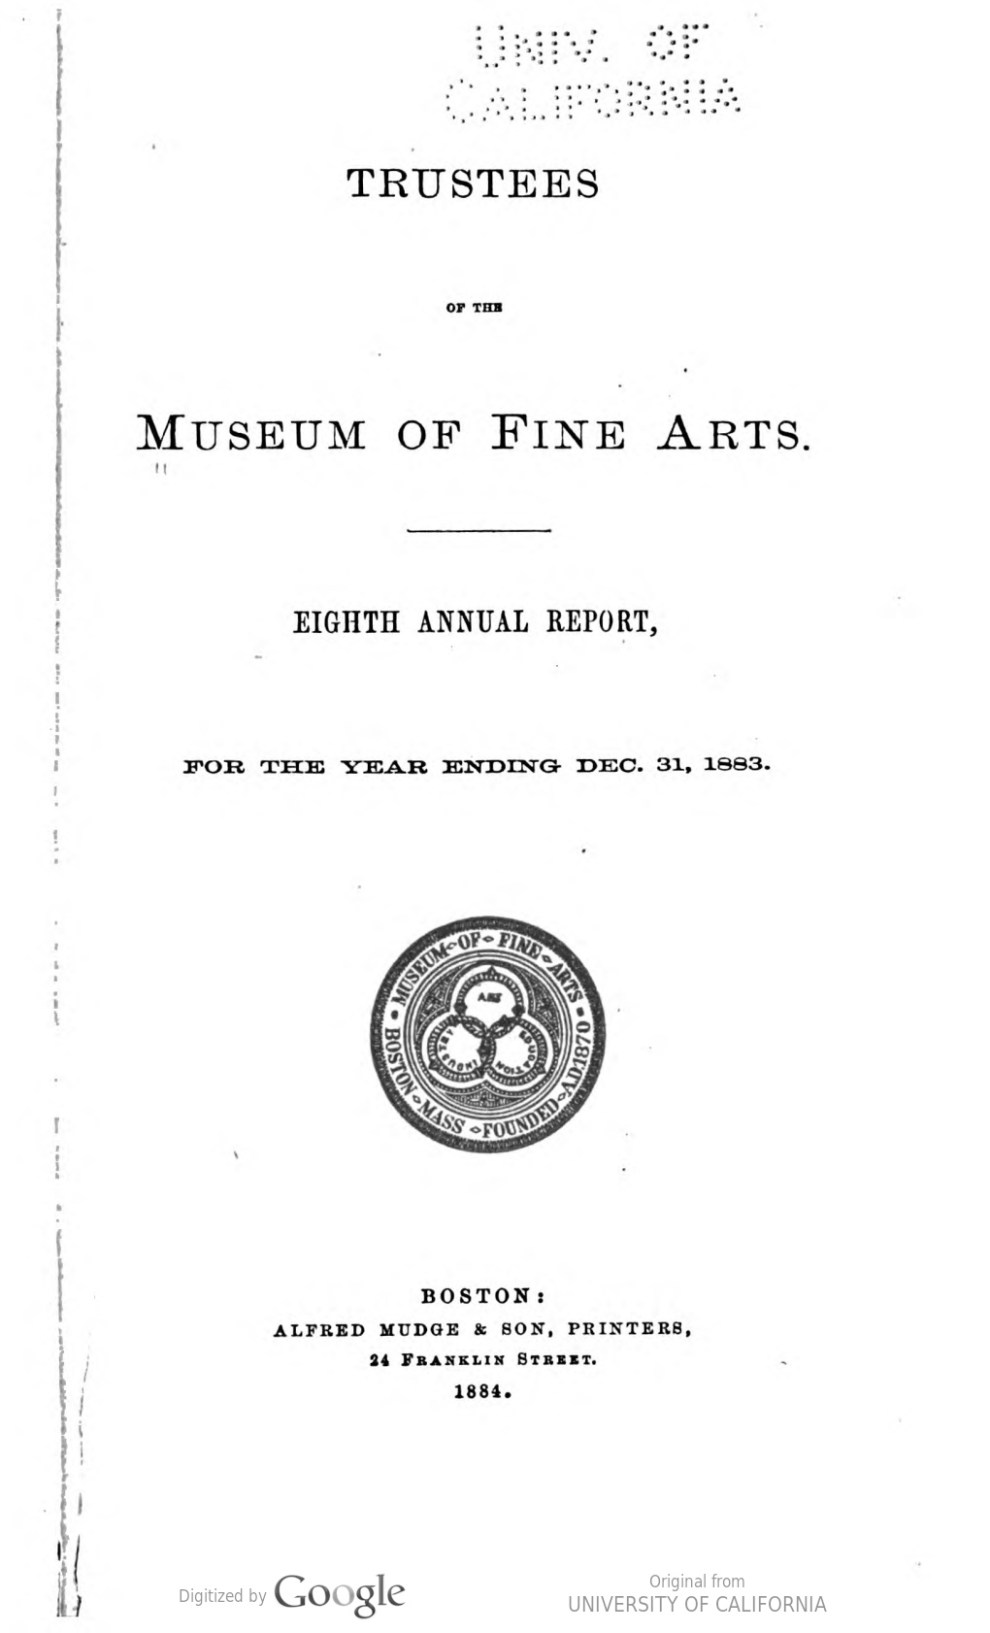 """Eighth Annual Report To the Trustees of the Museum of Fine Arts for the Year Ending Dec 31, 1883"" by the Museum of Fine Arts, Boston, MA, 1884, page 24-25, not illustrated"